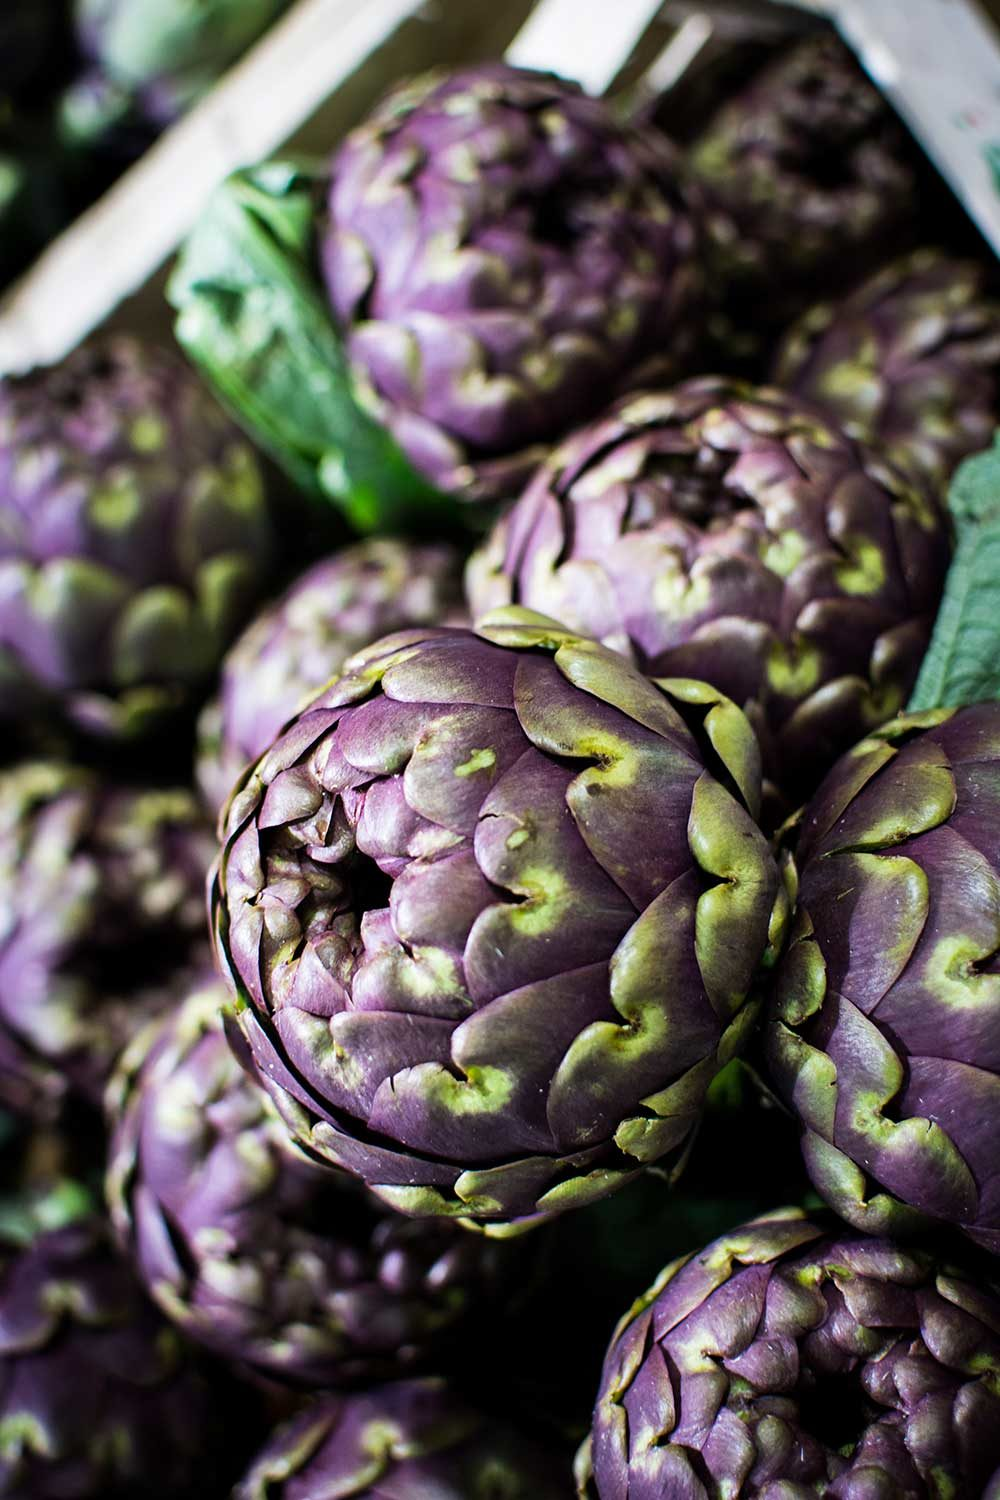 Artichoke has bile enhancing capabilities through stimulating the gallbladder